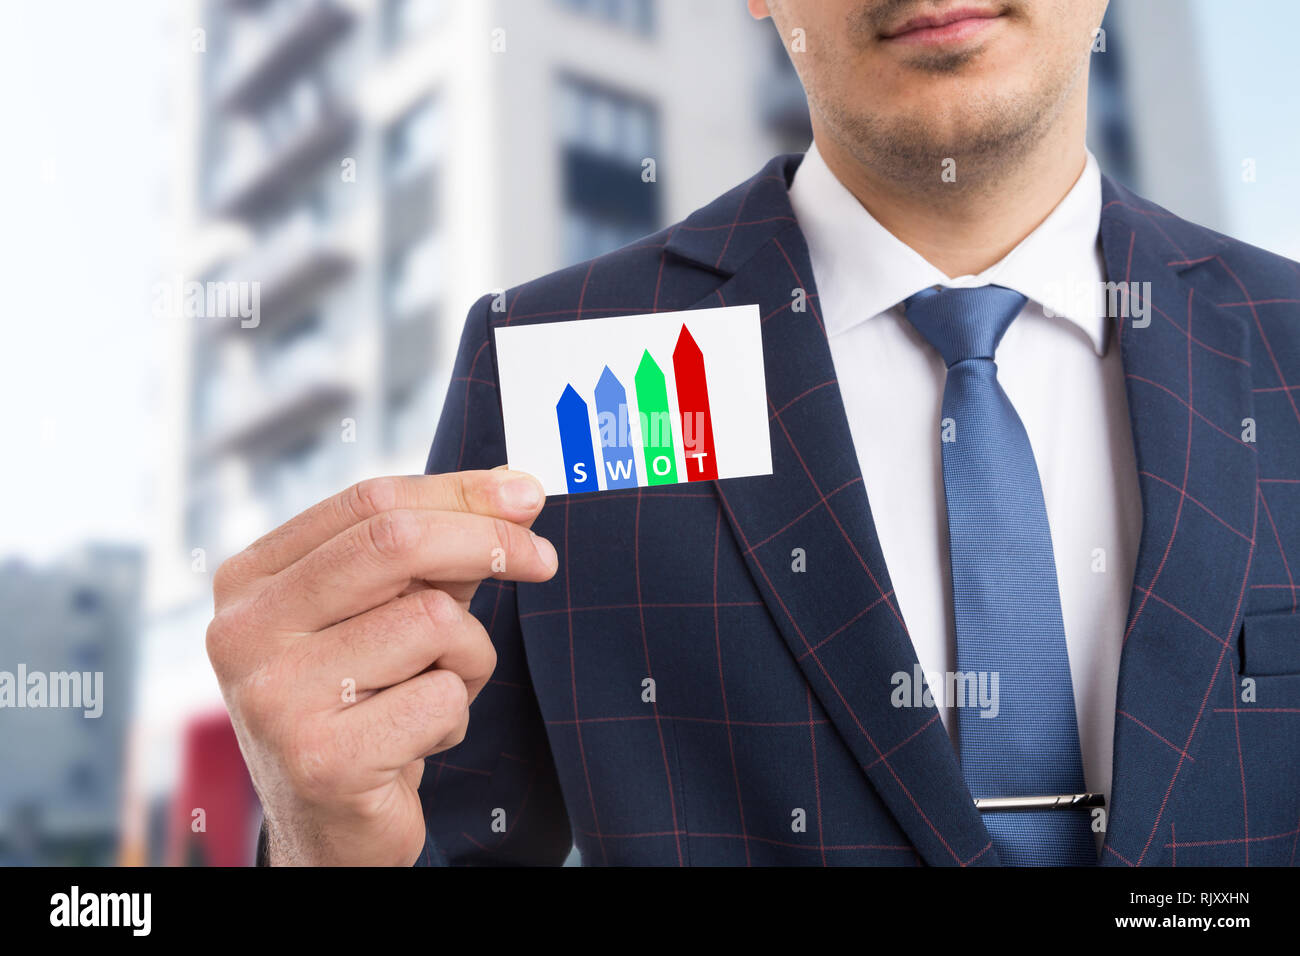 Man holding card presenting swot method as initials for strengths weaknesses opportunities threats in business strategy concept - Stock Image